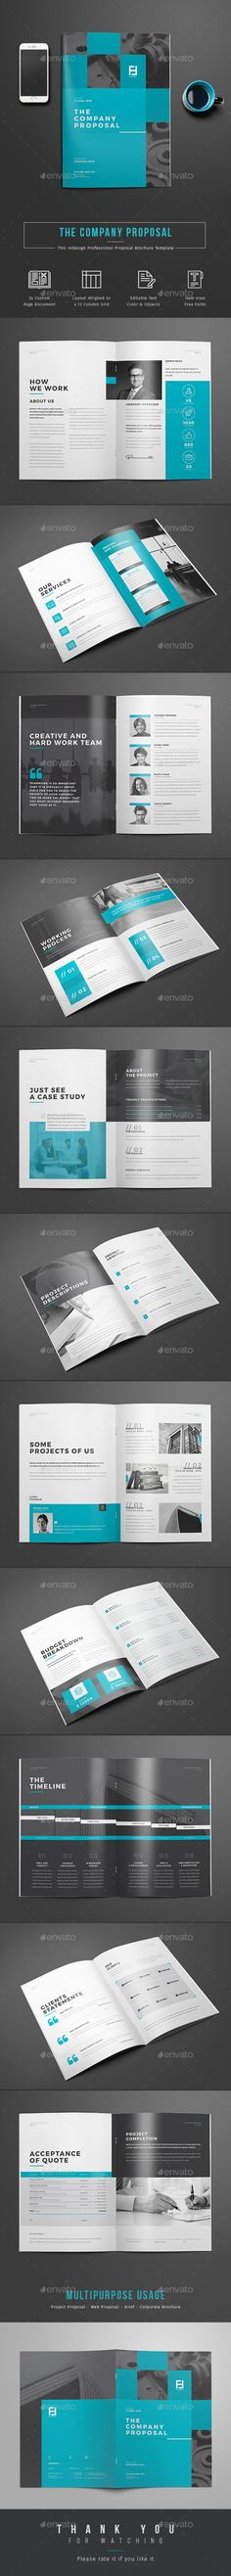 Proposal Business proposal template, Business proposal and - download business proposal template